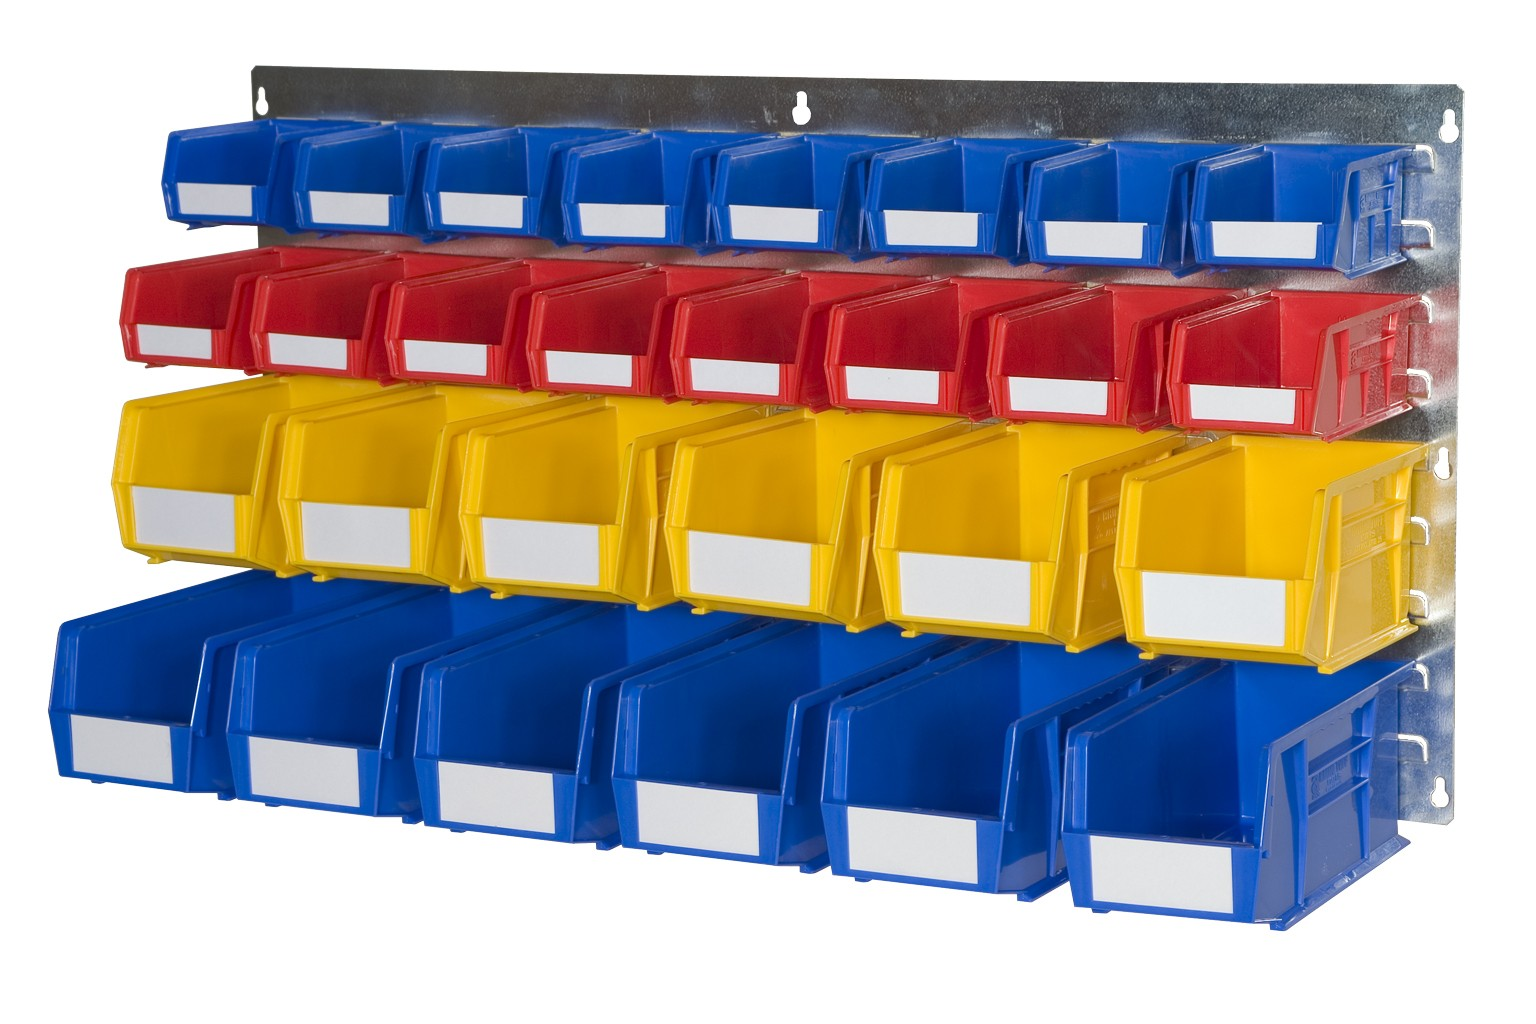 WALL LOUVRE PANELS WITH PLASTIC BINS (BL)